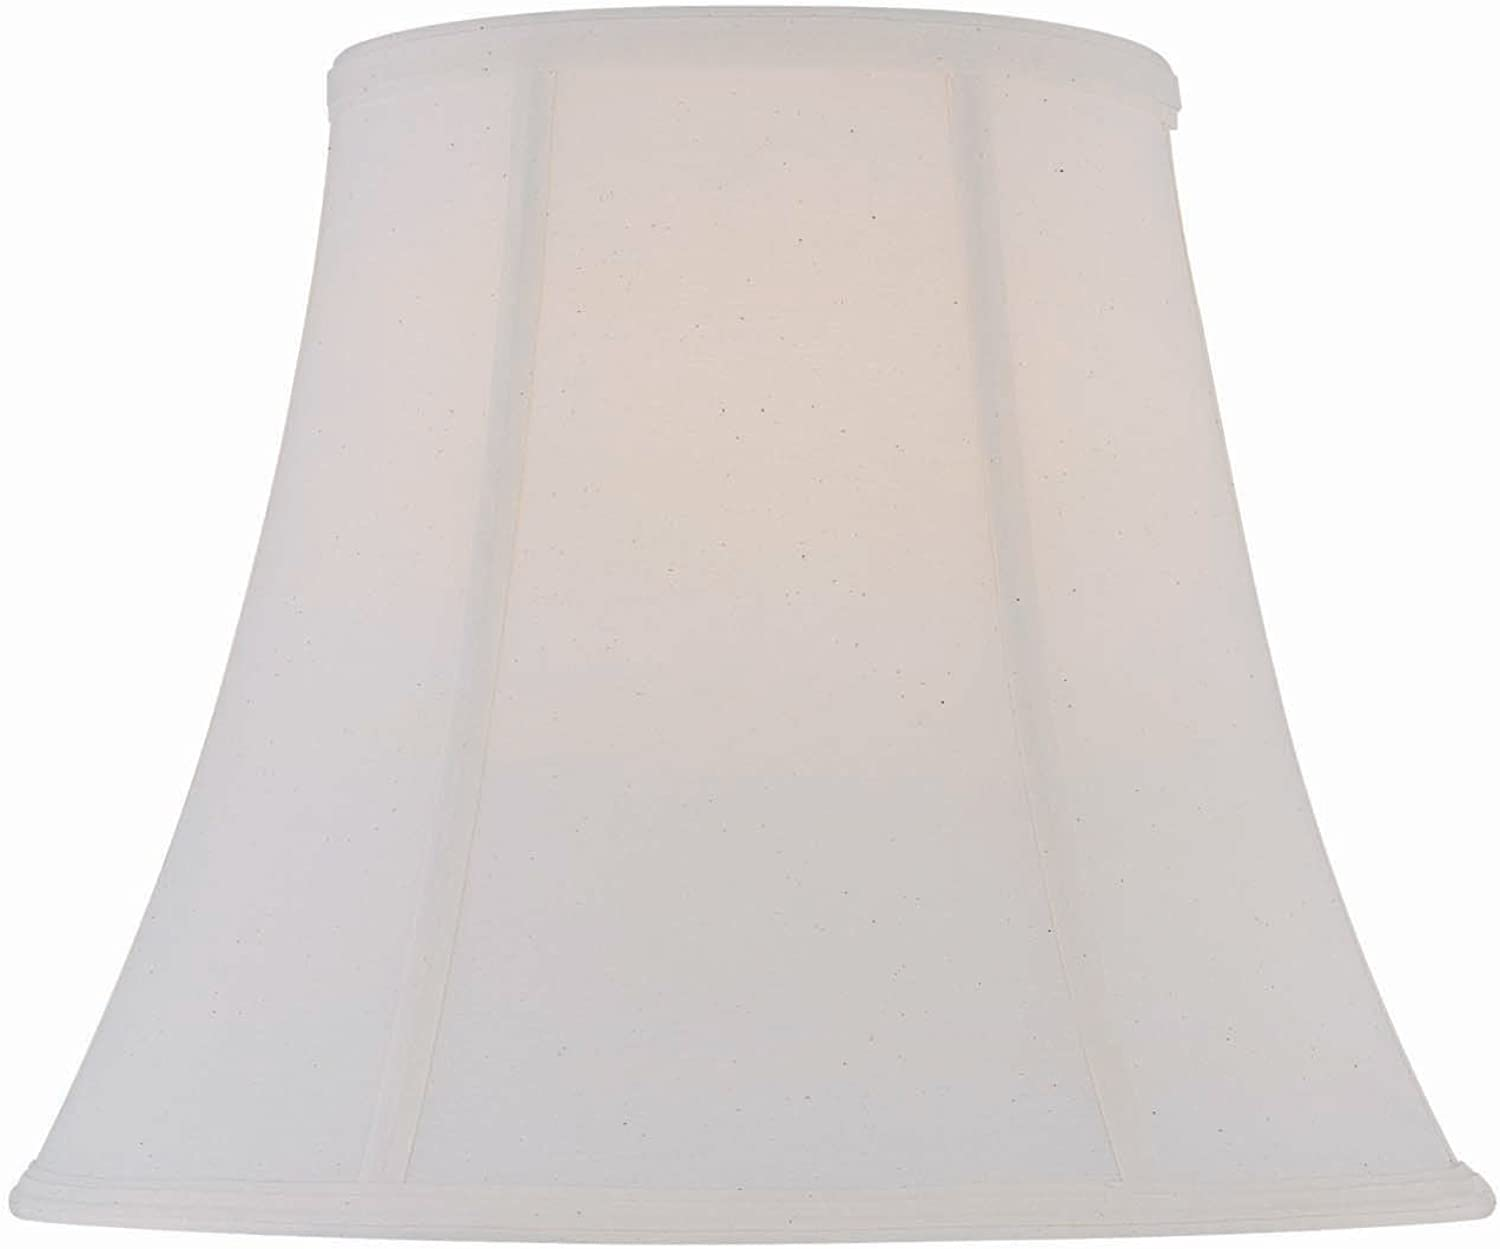 Lite Source CH1183-16 16-Inch Lamp Shade, Off-White